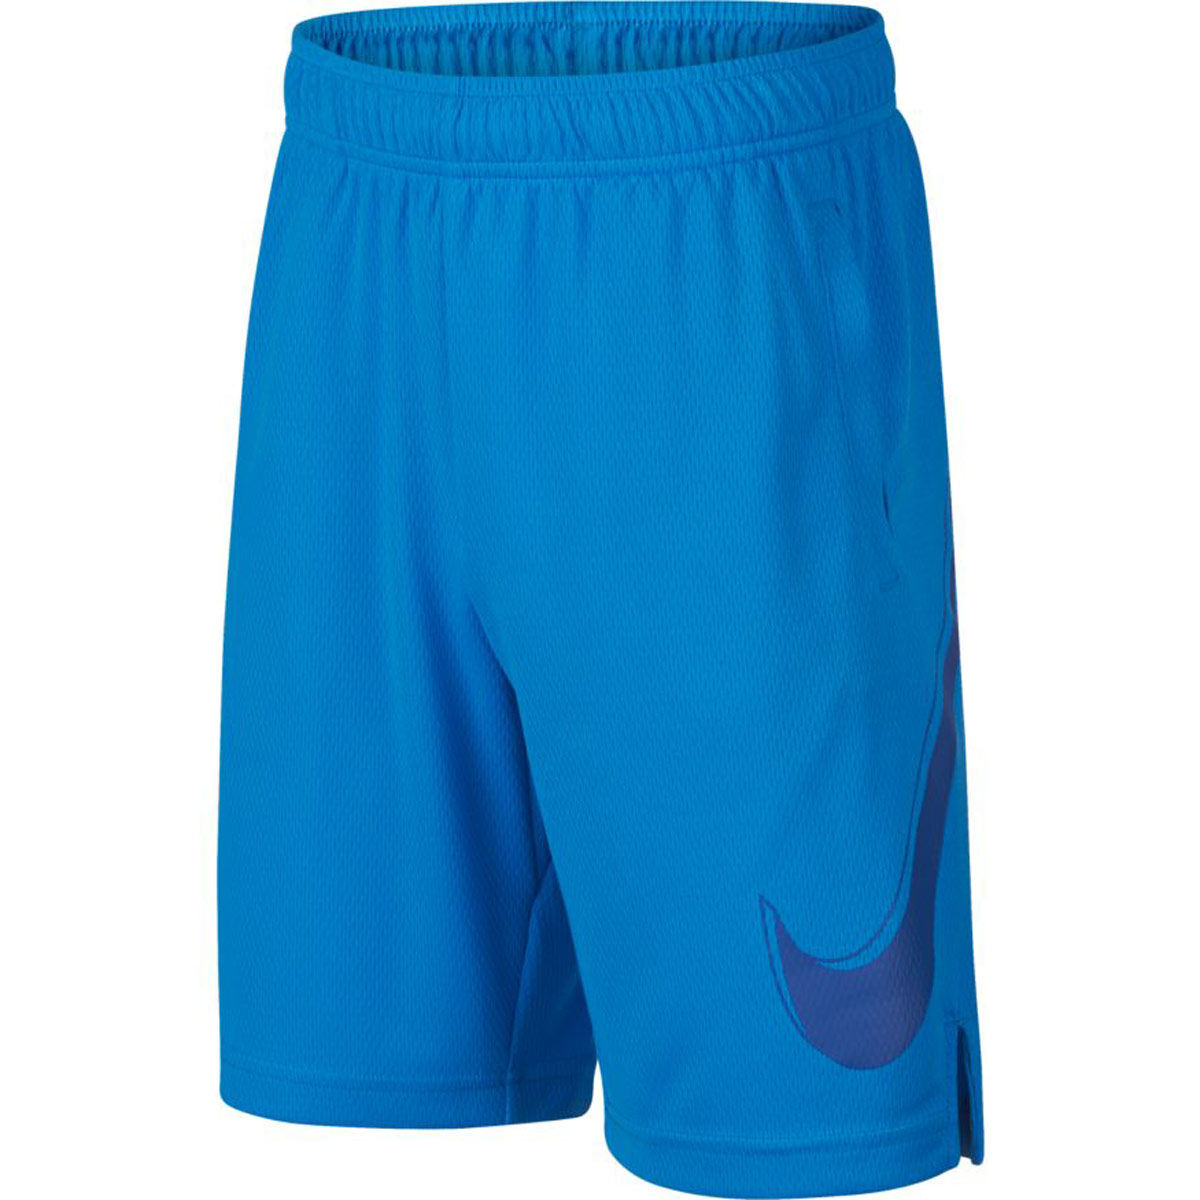 Nike Dry Boys Graphic Training Short